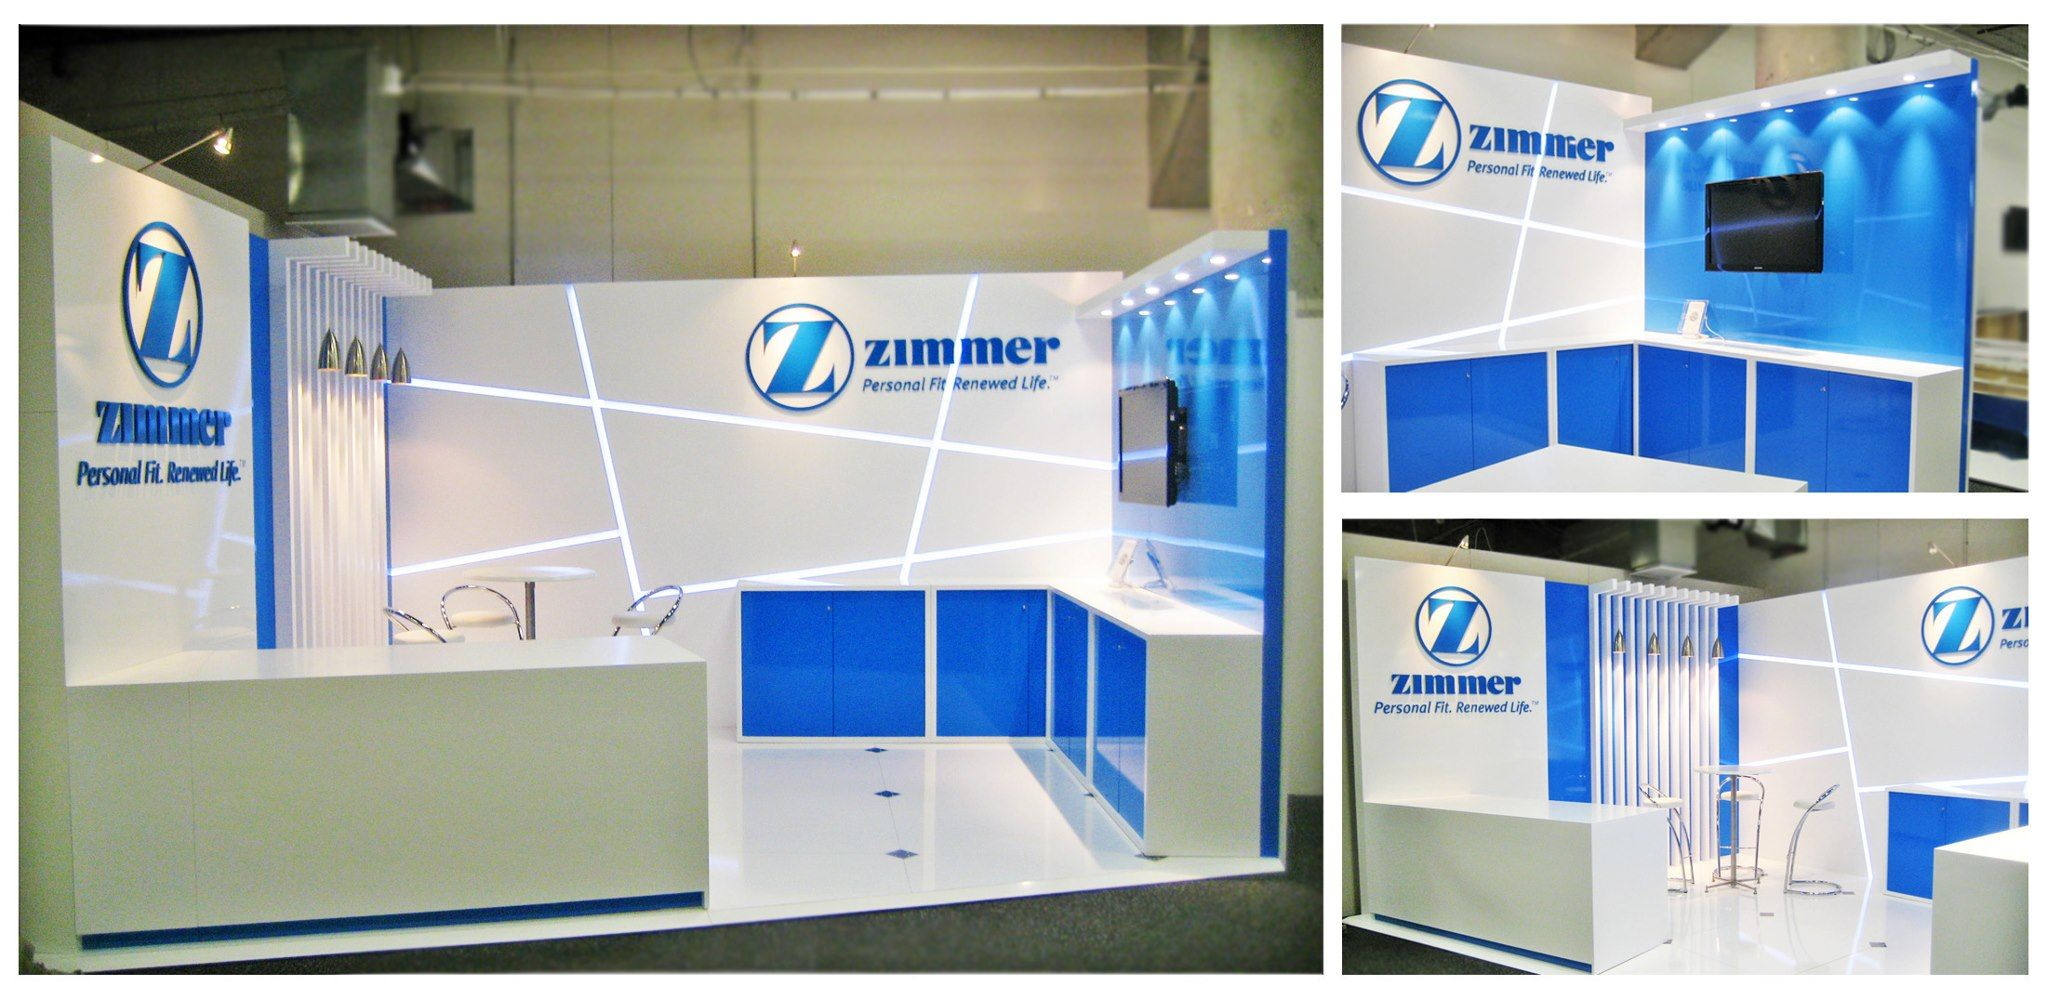 Exhibition Display Stands Nz : Zimmer trade display stand at nzoa designed and built